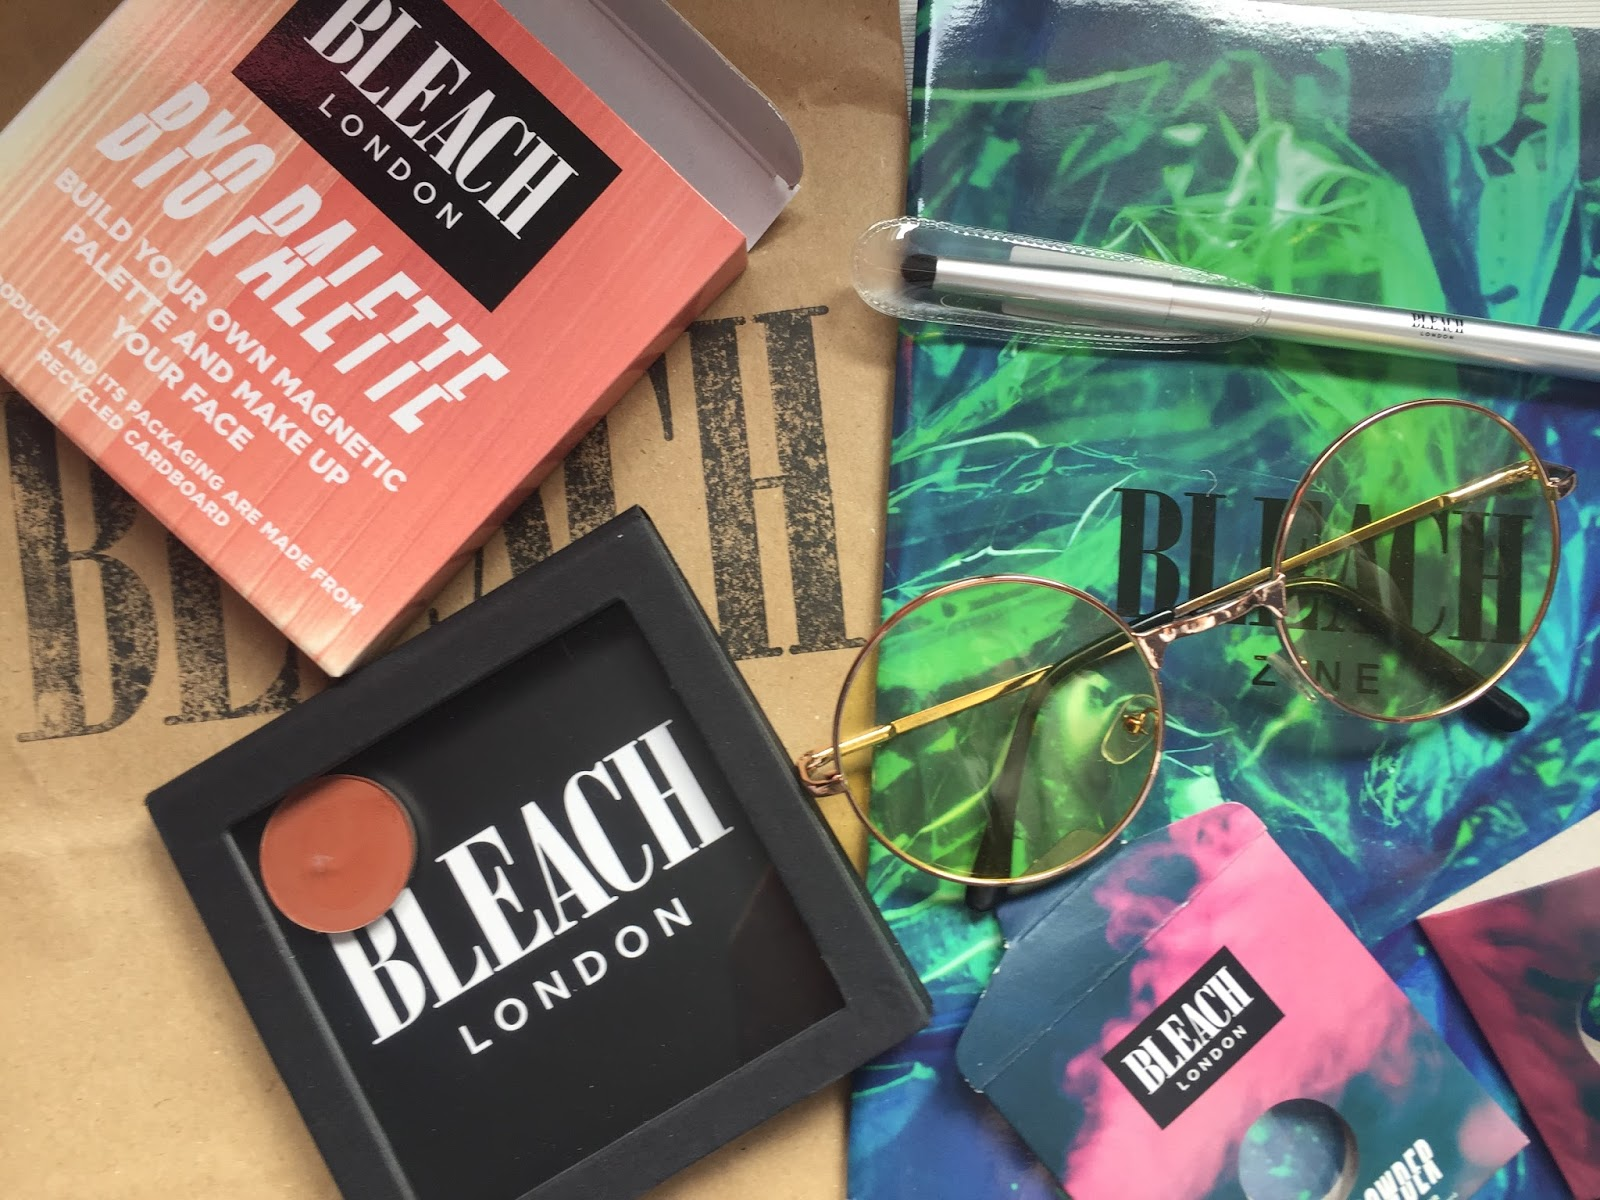 Bleach London haul: Zine, BYO palette, eyeshadow brush and louder powder